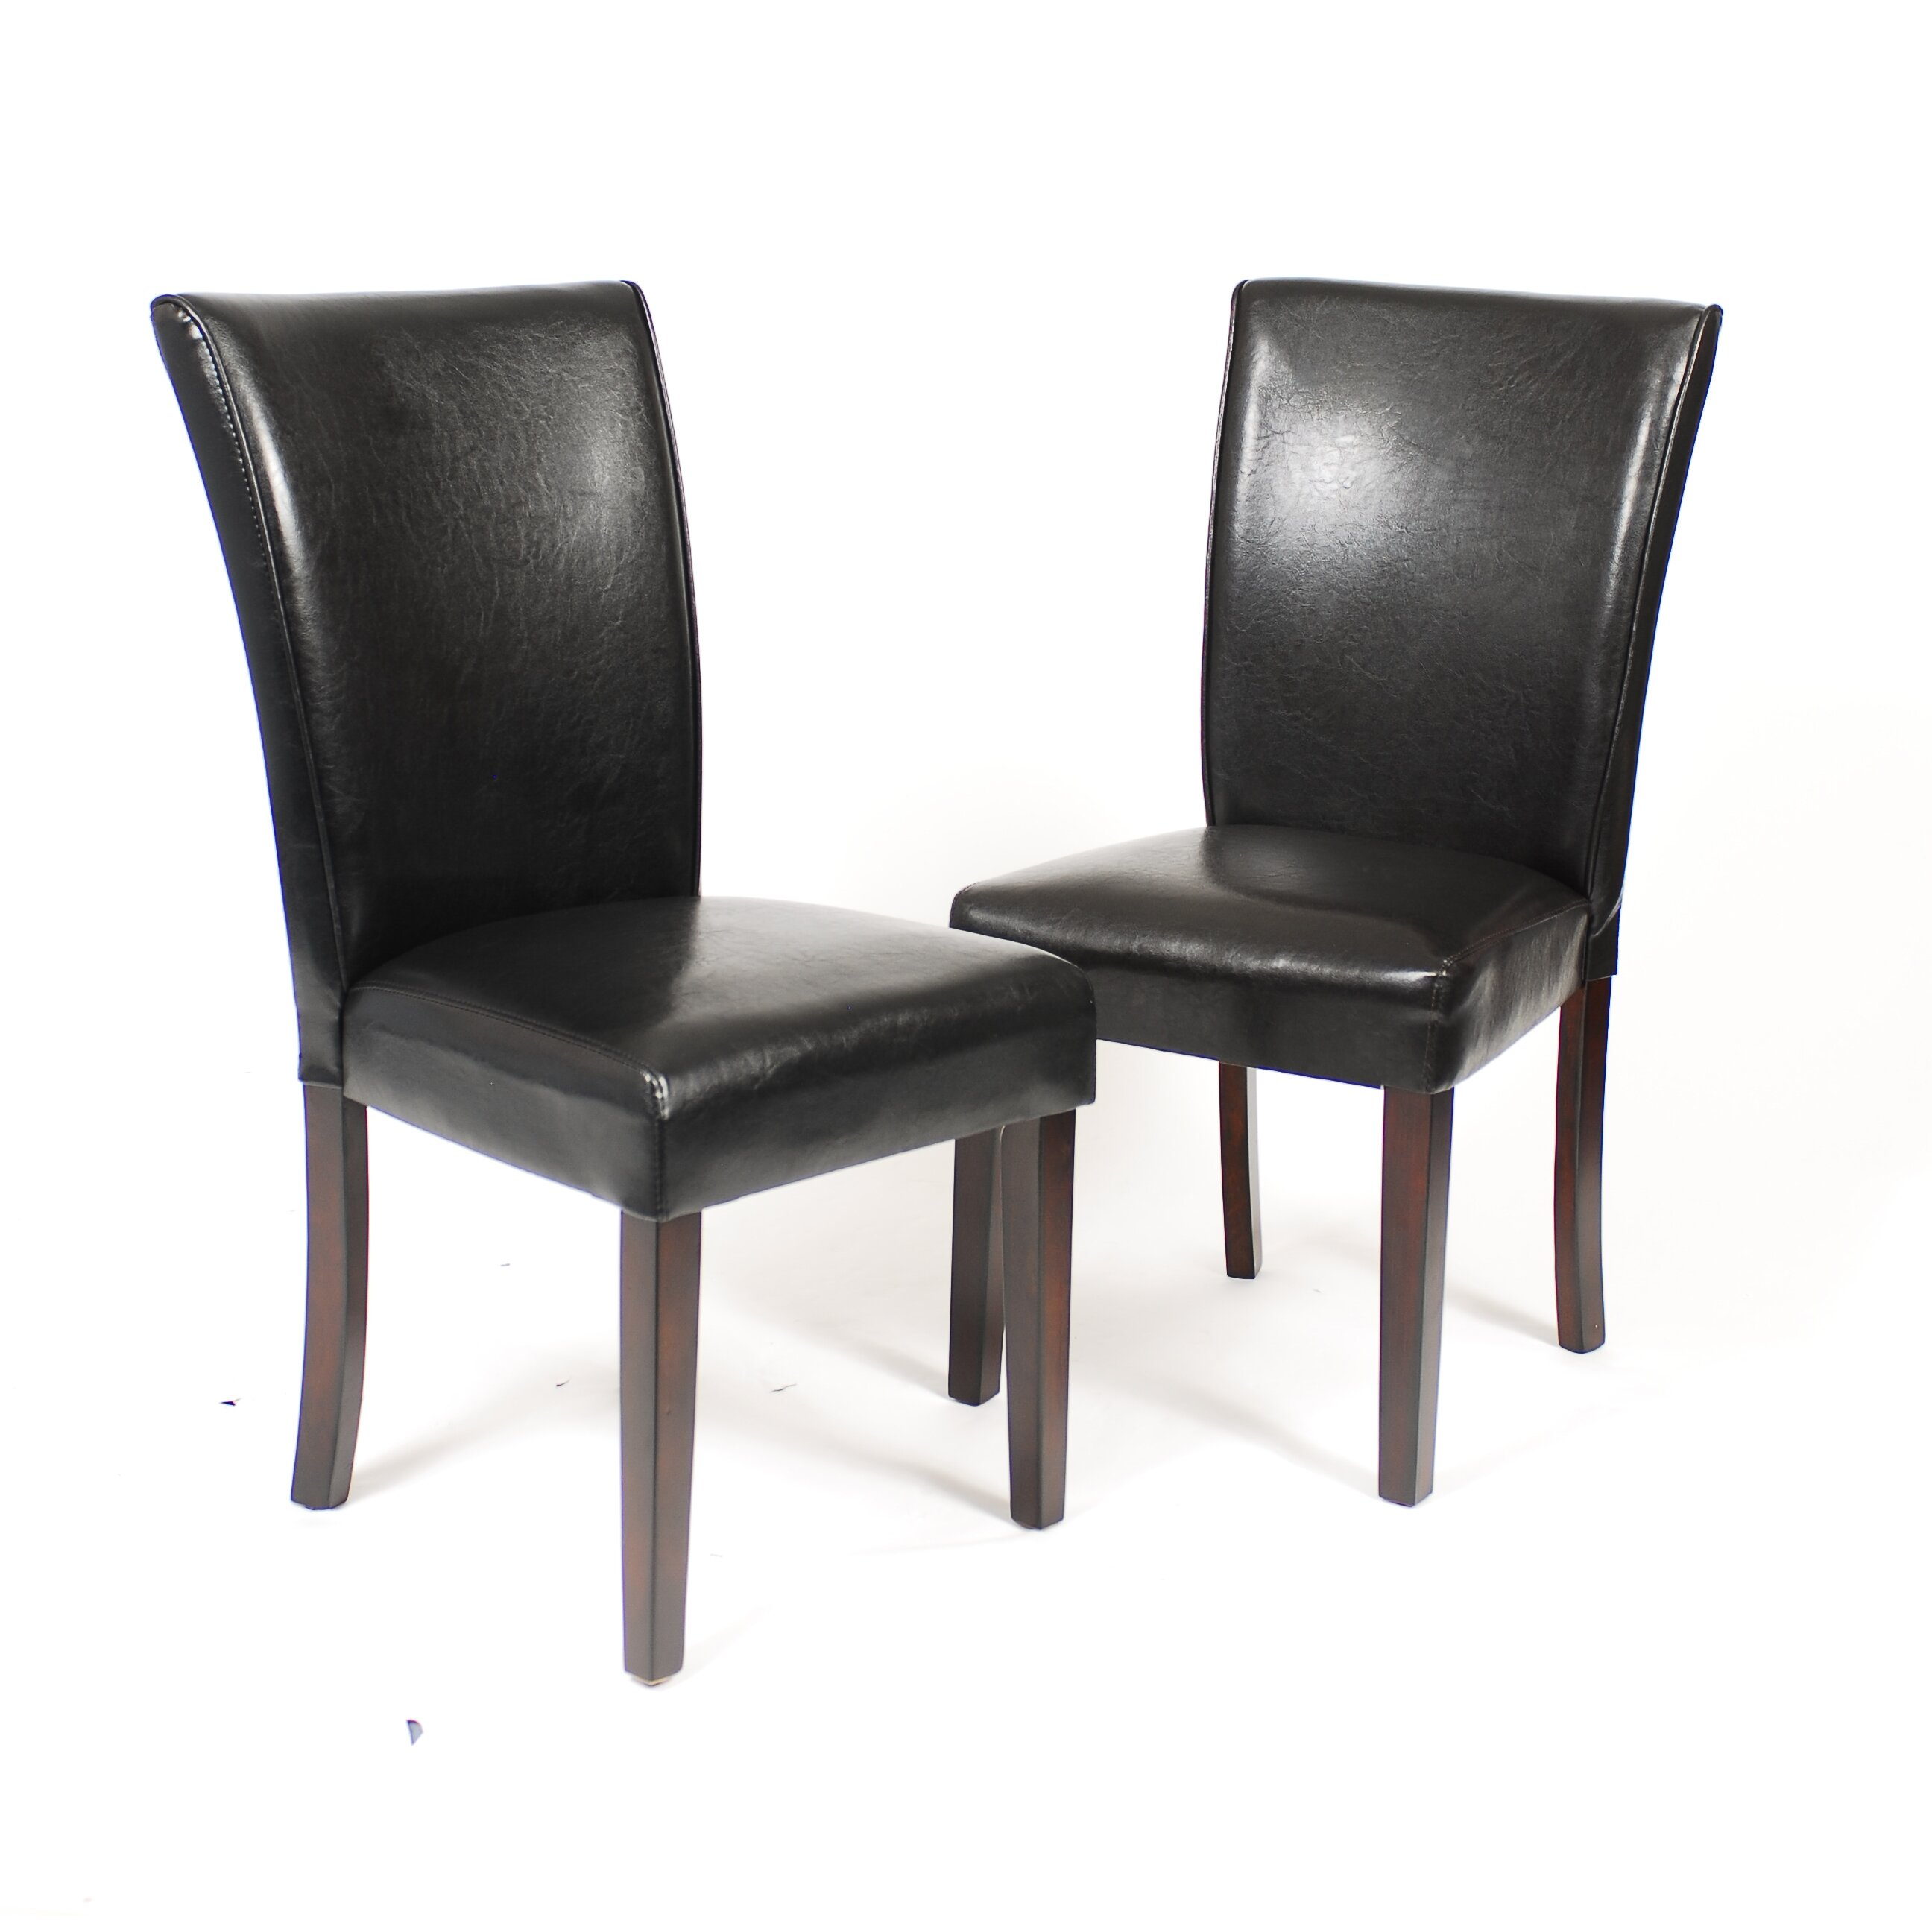 Harper Leatherette Dining Chair Black: Roundhill Furniture Black Leatherette Parson Chair